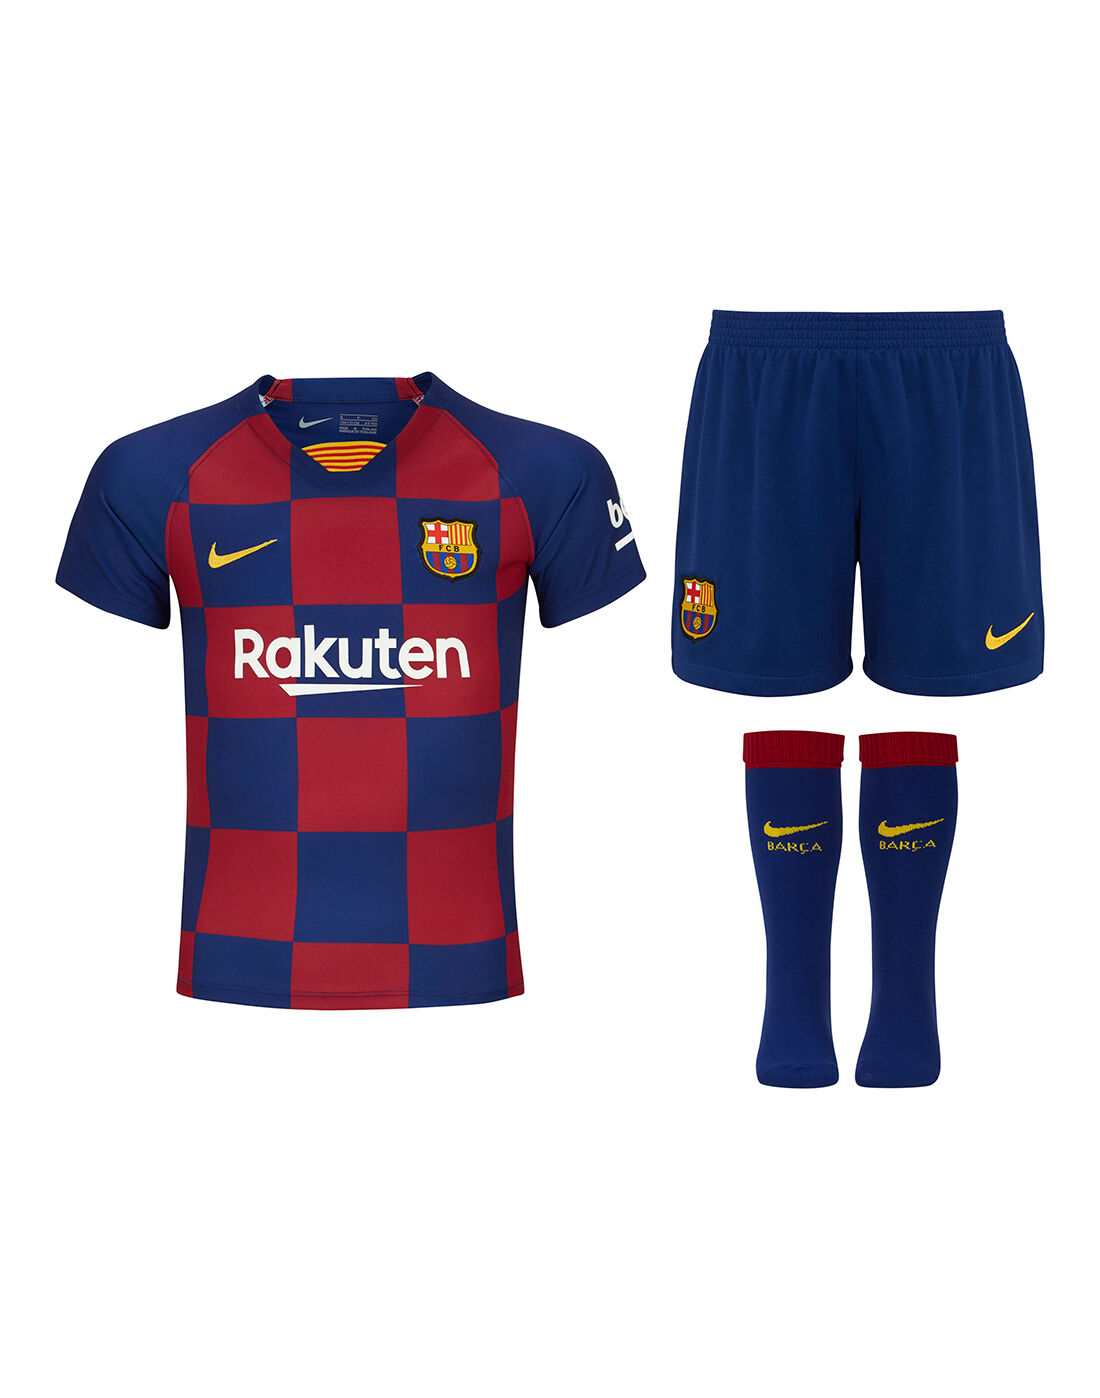 Boys' Clothing (2-16 Years) Kids' Clothes, Shoes & Accs. New Kids Adult Football Full Kit Youth Jersey Strips Boys Soccer Training Outfit